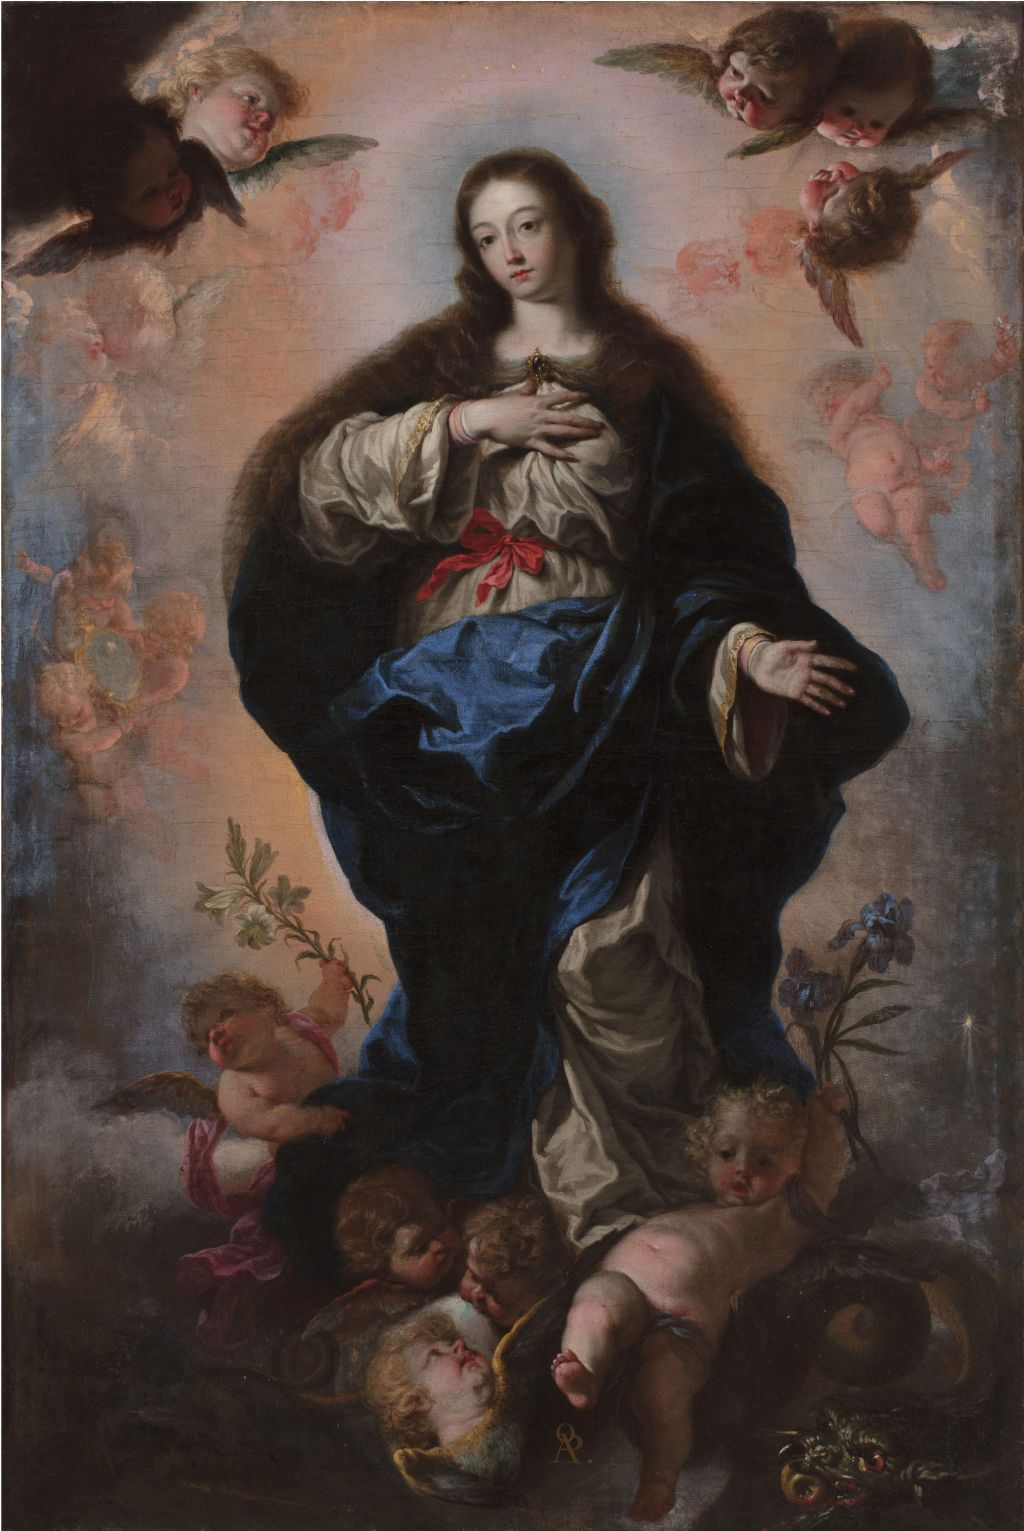 Antonio Palomino, Immaculate Conception